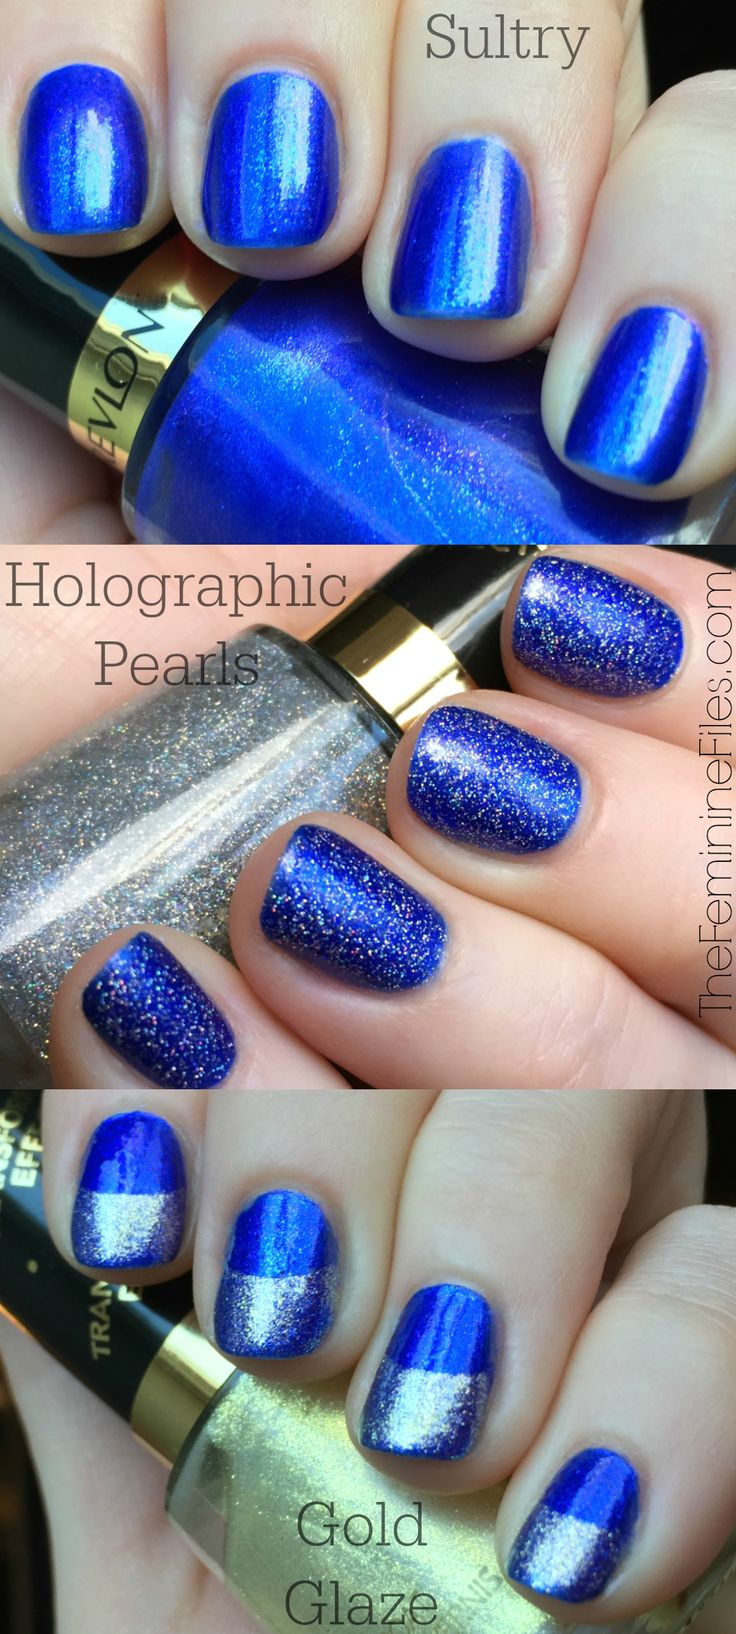 Sultry Nail Polish Sultry